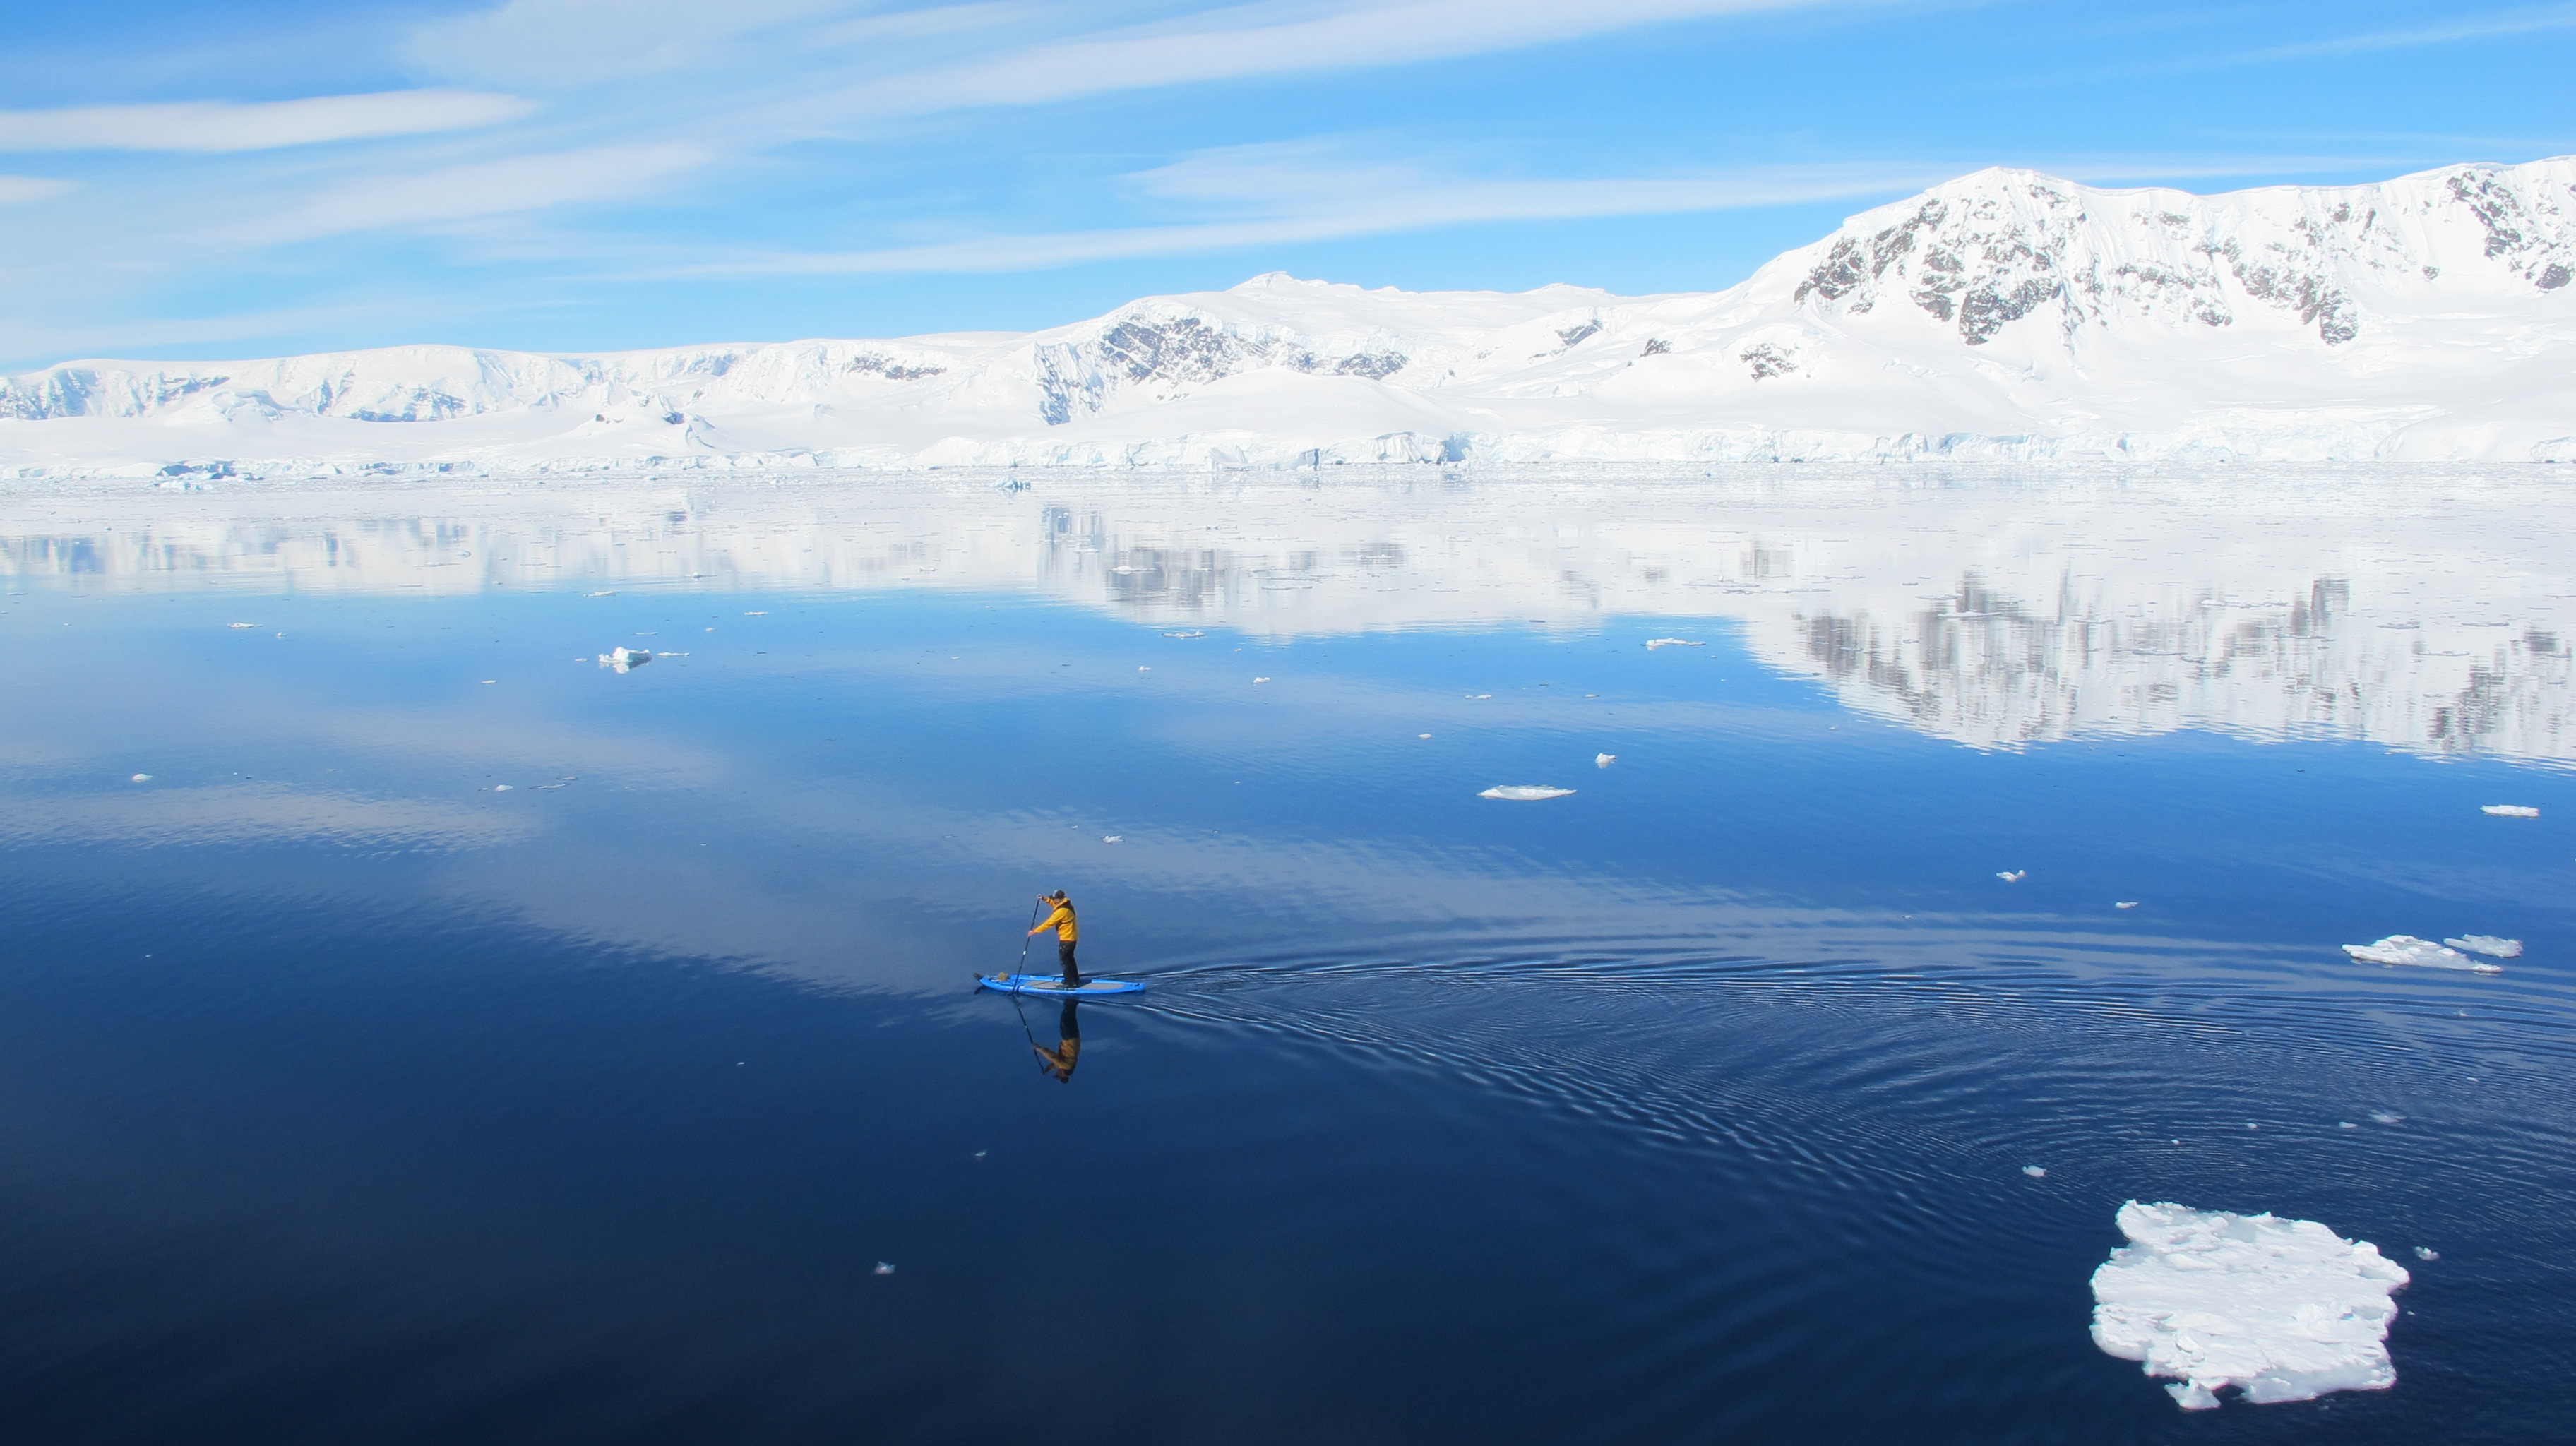 A passenger glides over the surface of pristine, glass-still Antarctic waters on a standup paddleboard.